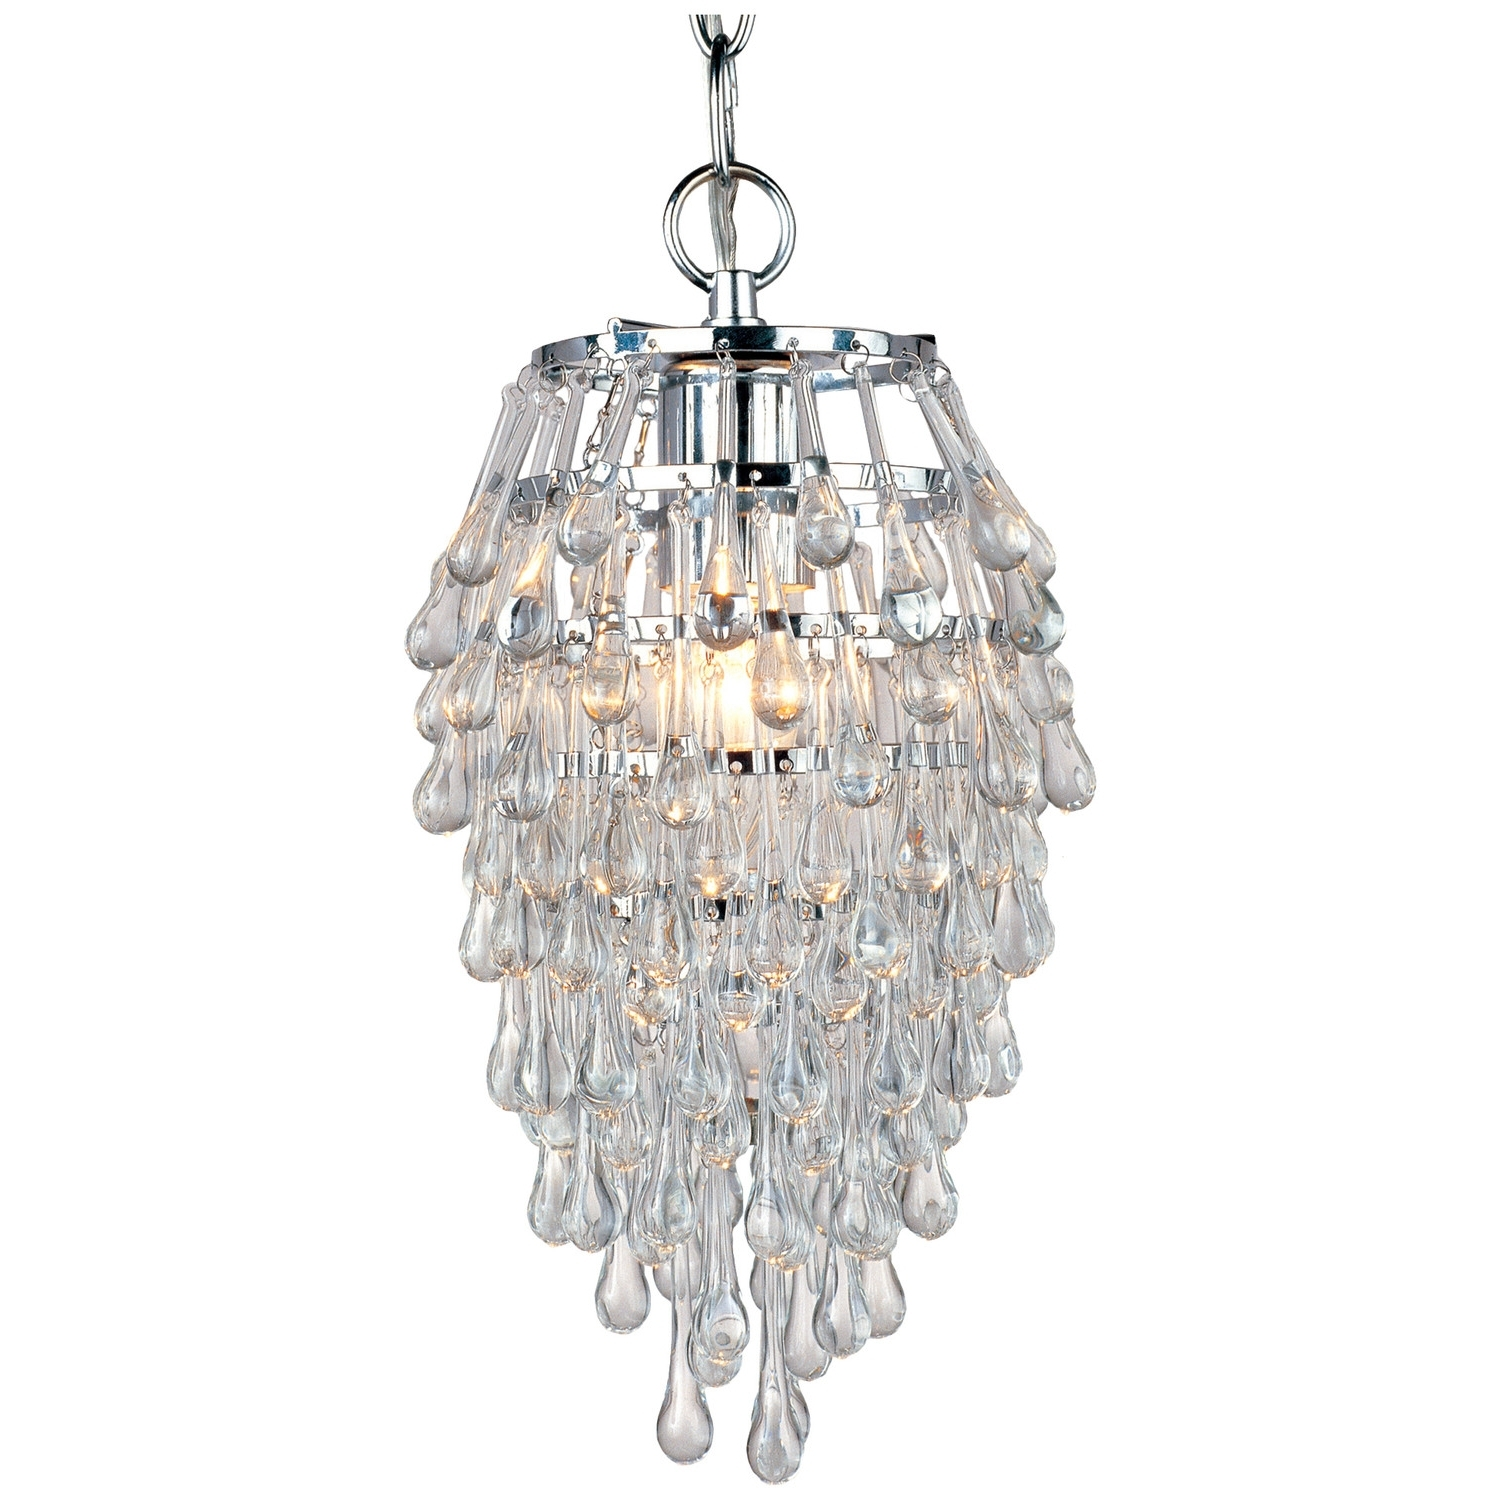 Most Recent Traditional Chandeliers Throughout Awesome Traditional Chandelier Lighting Lighting Modern Chandeliers (View 14 of 20)